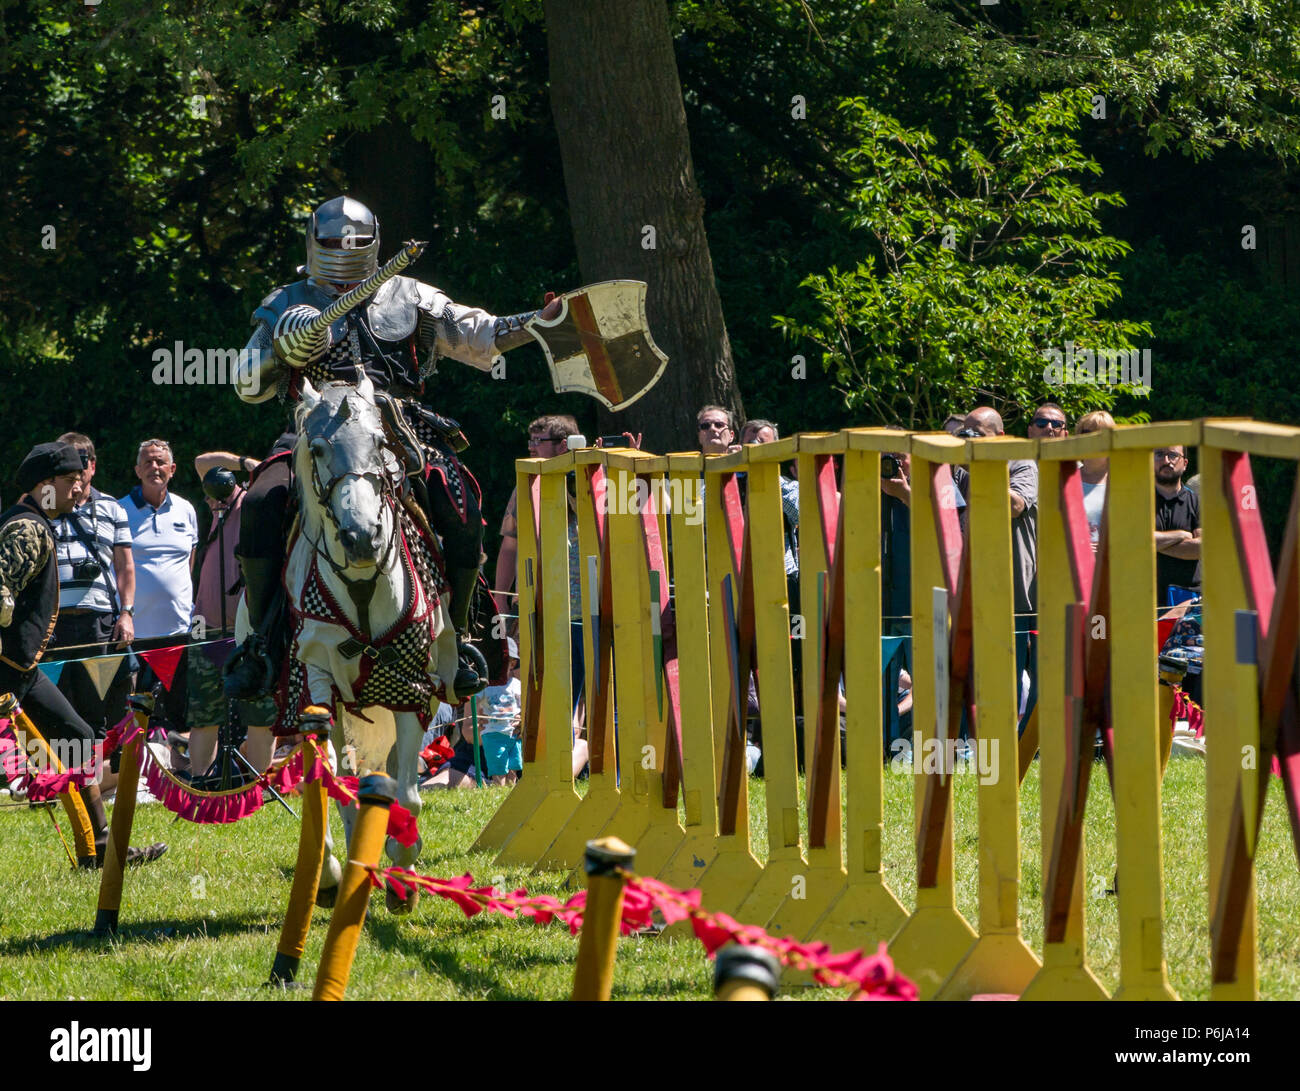 Jousting and Medieval Fair at Linlithgow Palace, Linlithgow, Scotland, United Kingdom, 30th June 2018. Historic Environment Scotland kick off their summer entertainment programme with a fabulous display of Medieval jousting in the grounds of the historic castle. The family fun day includes living history camps, medieval games, crafts, archery, and falconry. The jousting is performed by Les Amis D'Onno equine stunt team based in the Borders. Knight Sir Checkmate Fitzpercy, played by Jacob Martin, jousts riding his horse with a lance - Stock Image